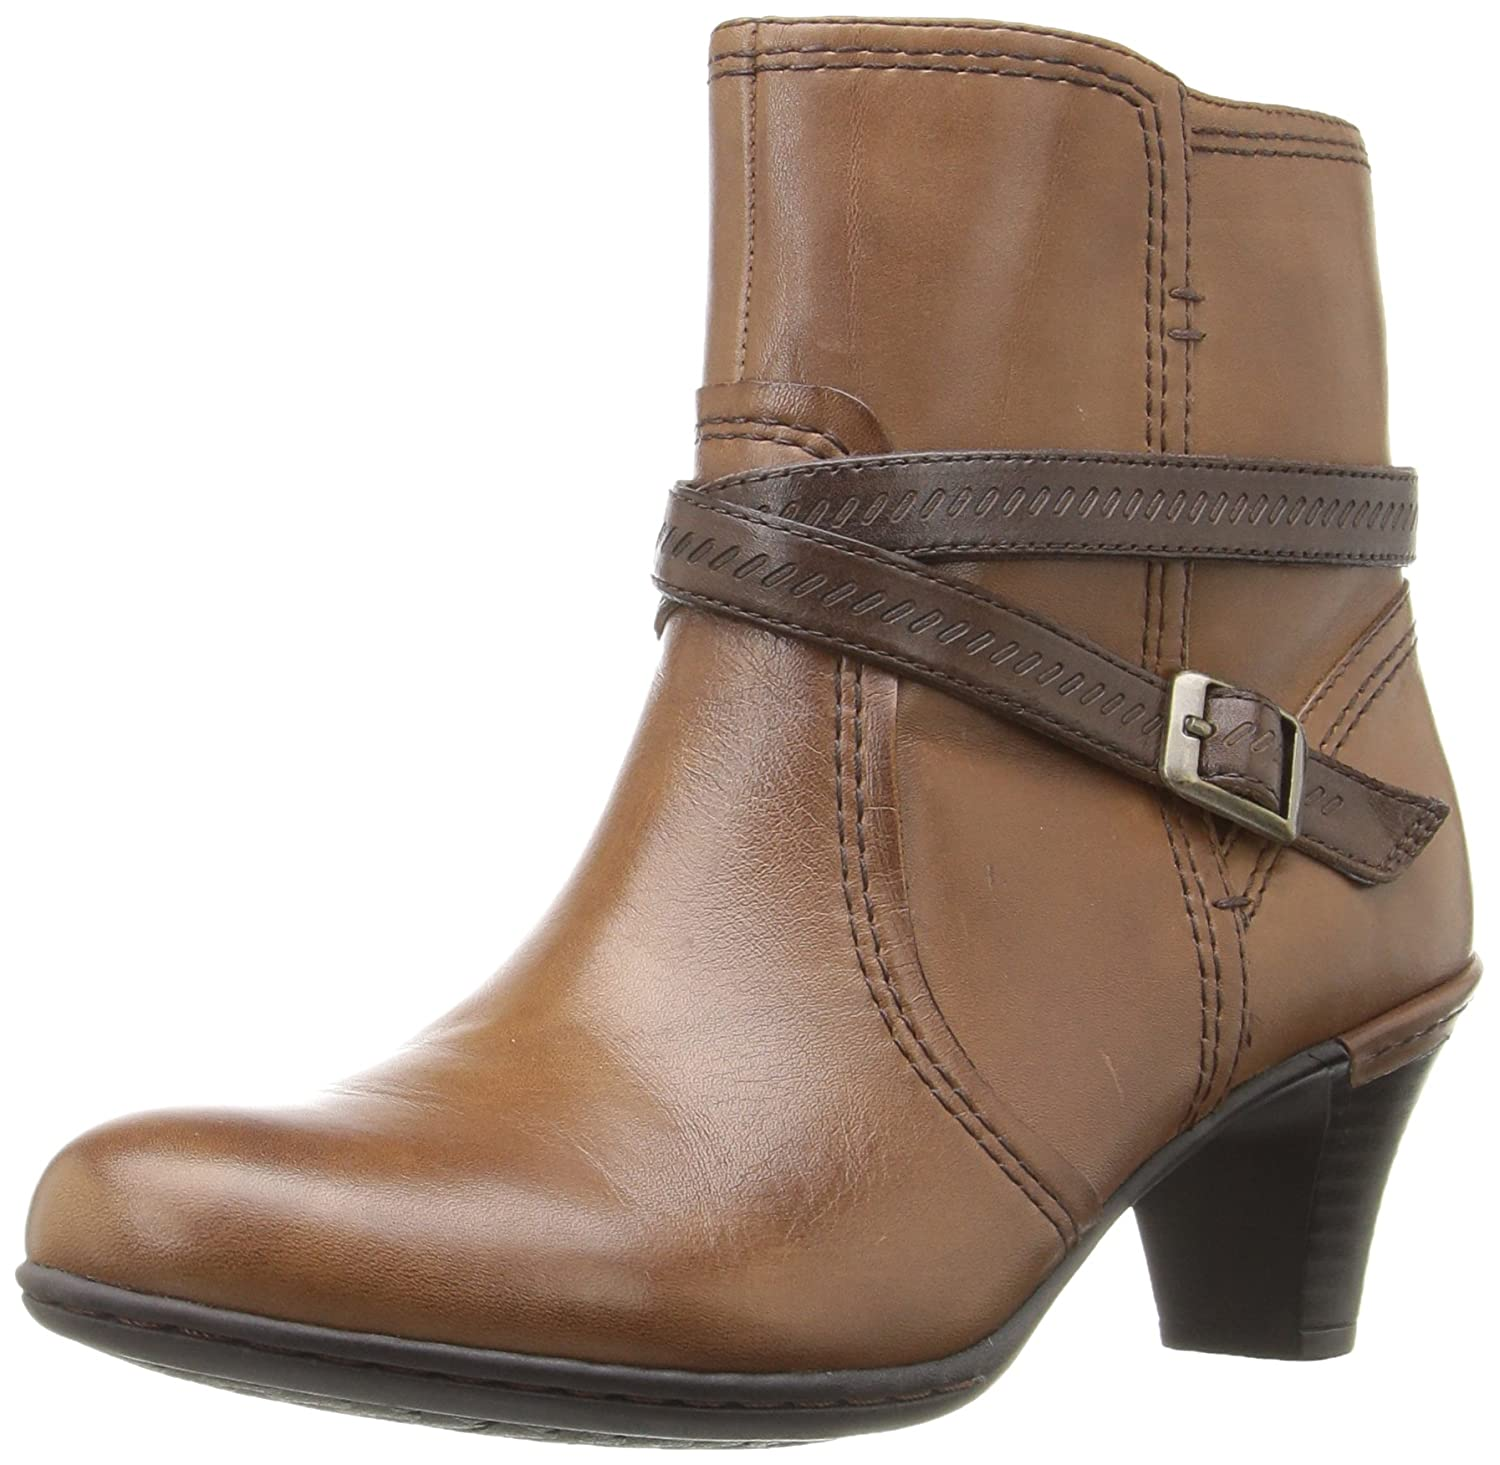 Rockport Women's Cobb Hill Missy Boot B01AK6414E 7.5 W US|Almond